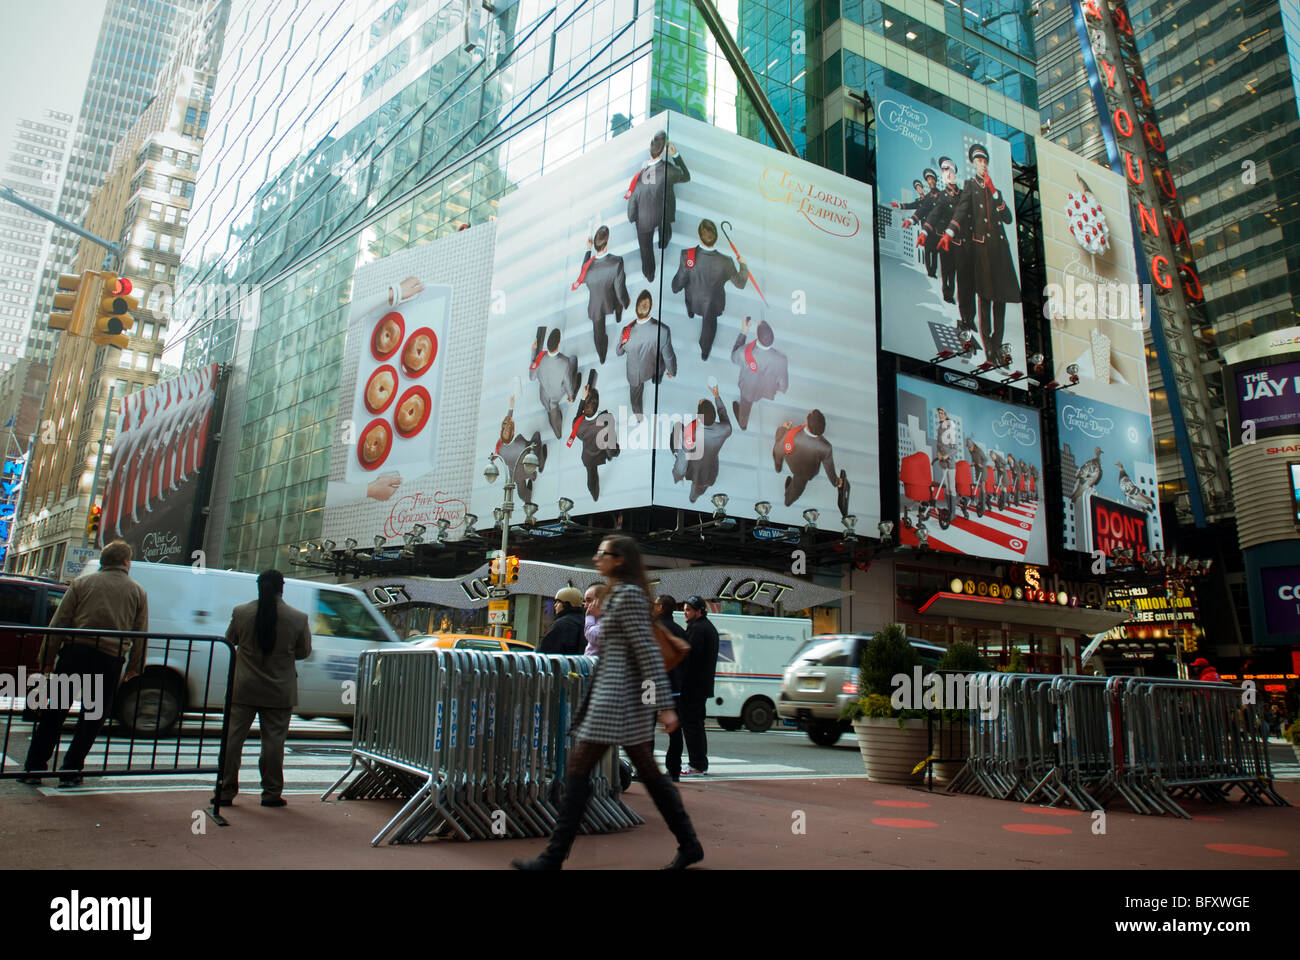 A billboard advertising Target department stores is seen in Times Square in New York - Stock Image